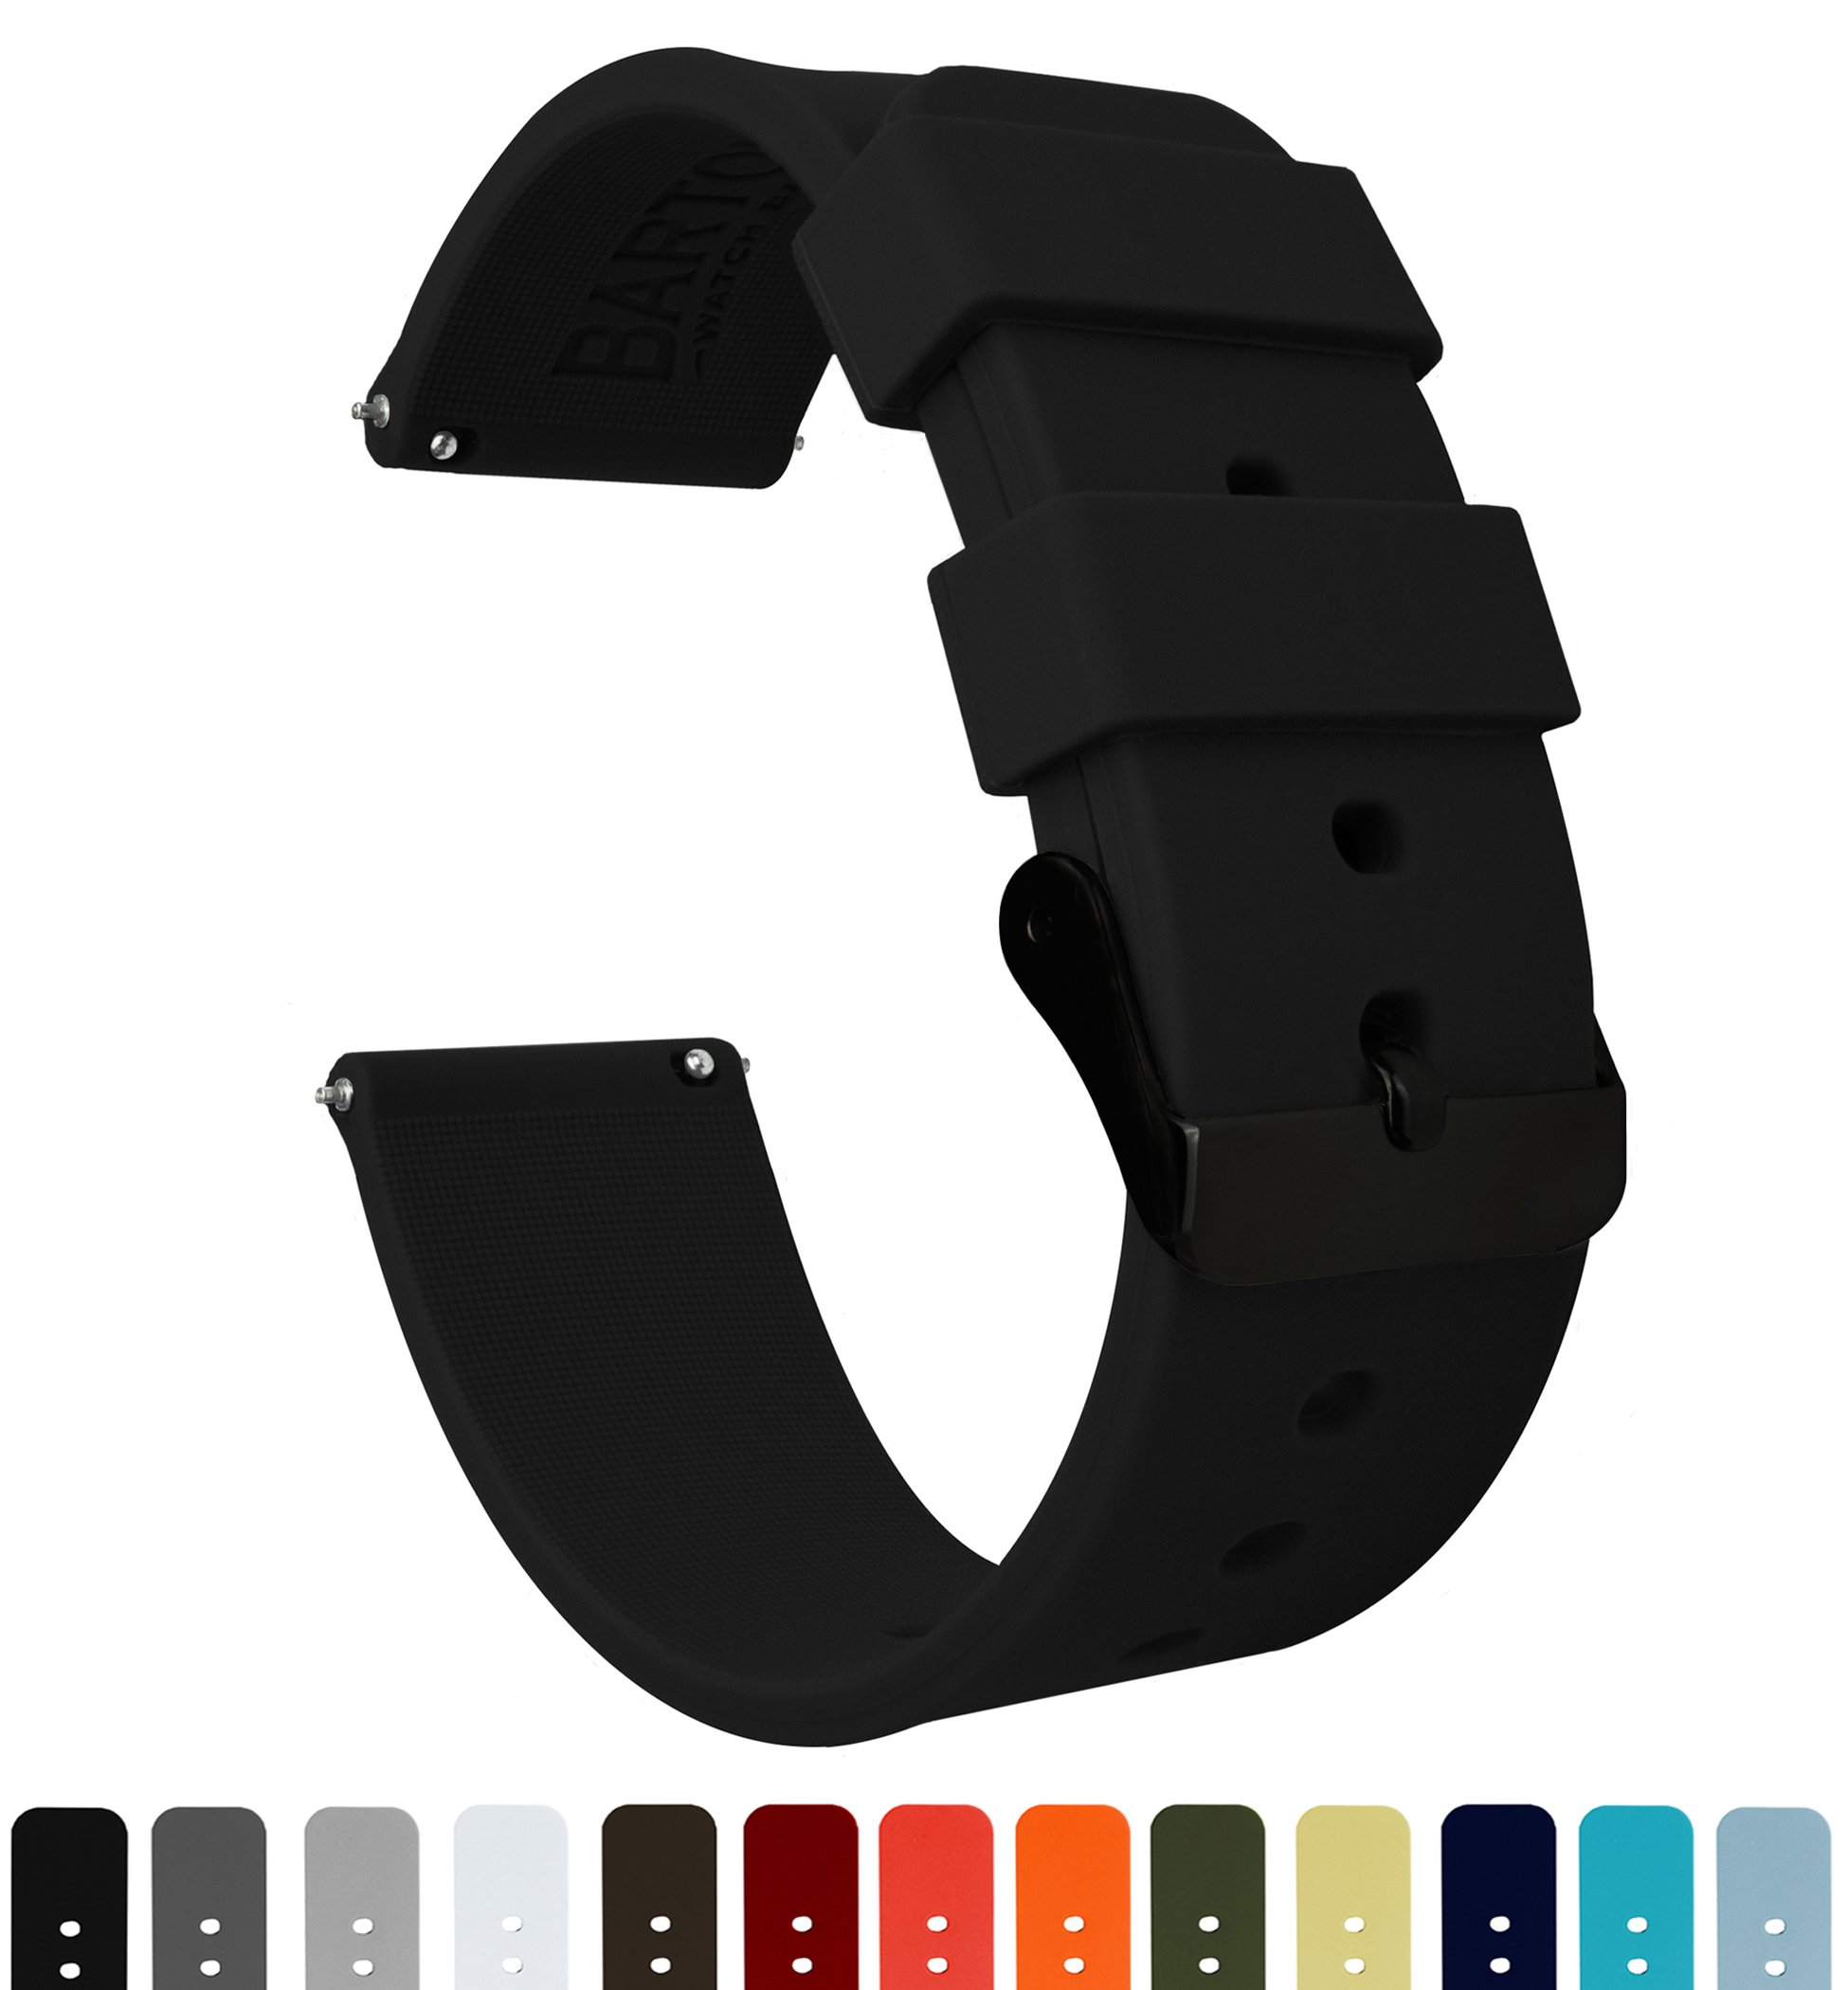 BARTON Silicone - Black Buckle - 16mm, 18mm, 20mm or 22mm - Black 22mm Watch Band Strap